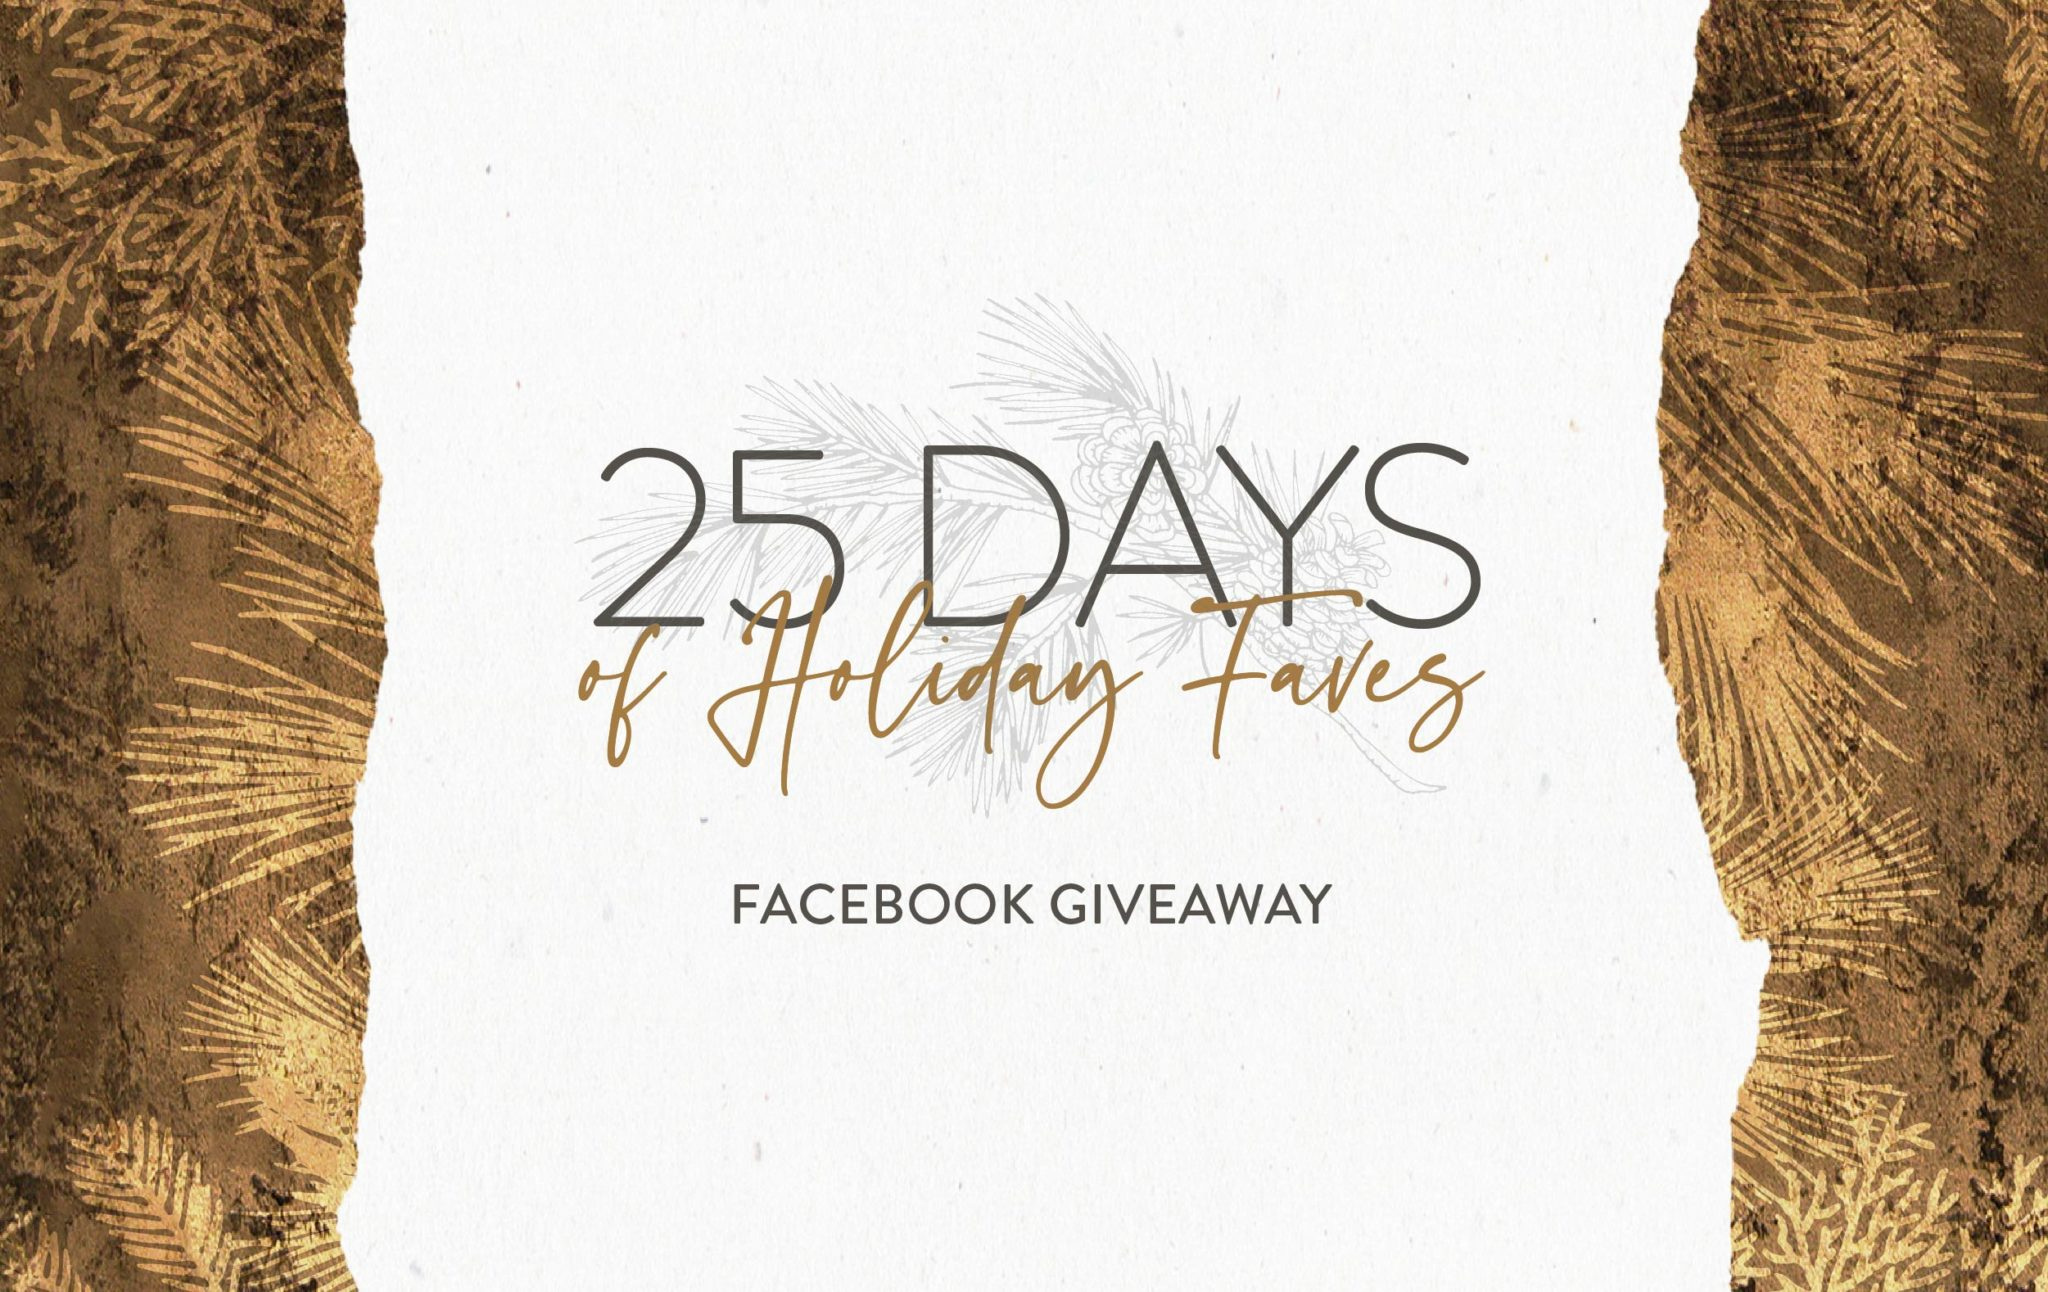 25 Days of Holiday Favs